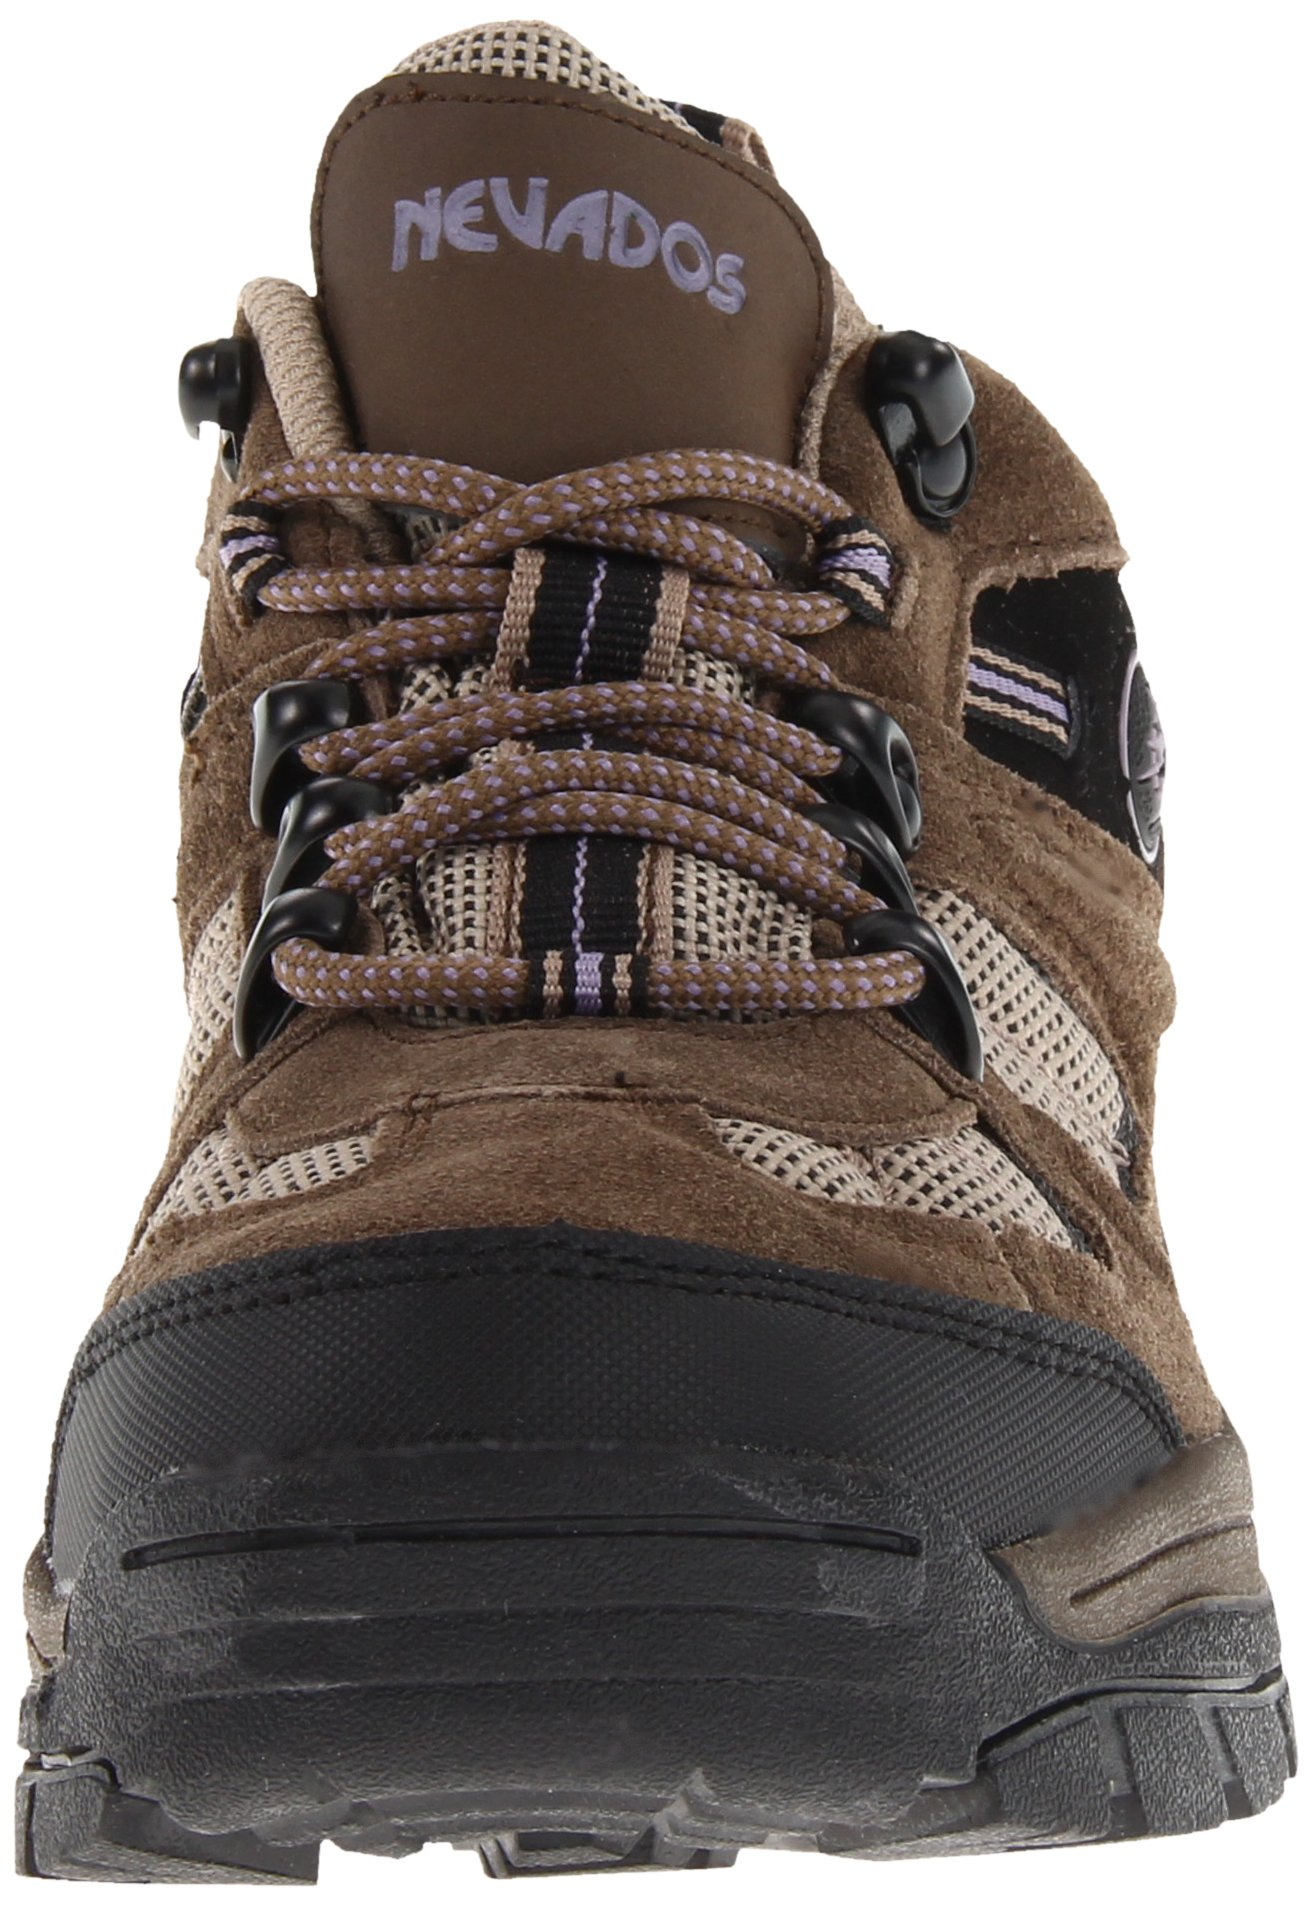 Nevados Women's Klondike Waterproof Low V4161W Hiking Boot,Dark Brown/Black/Taupe,9.5 M US by Nevados (Image #4)